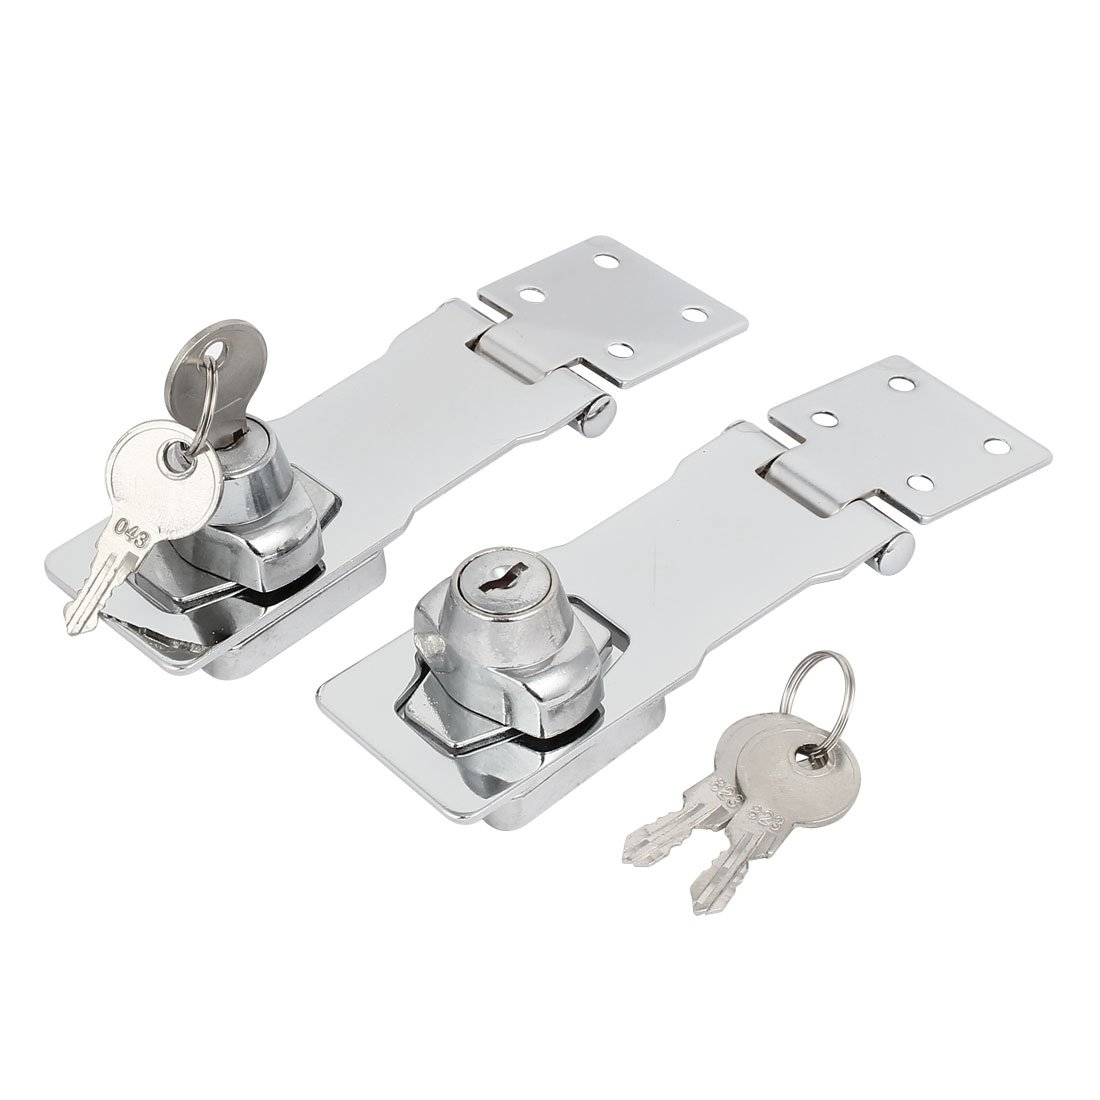 uxcell 144mmx40mmx33mm Metal Screw Fixed Safety Guard Keyed Hasp Latches Locks 2pcs